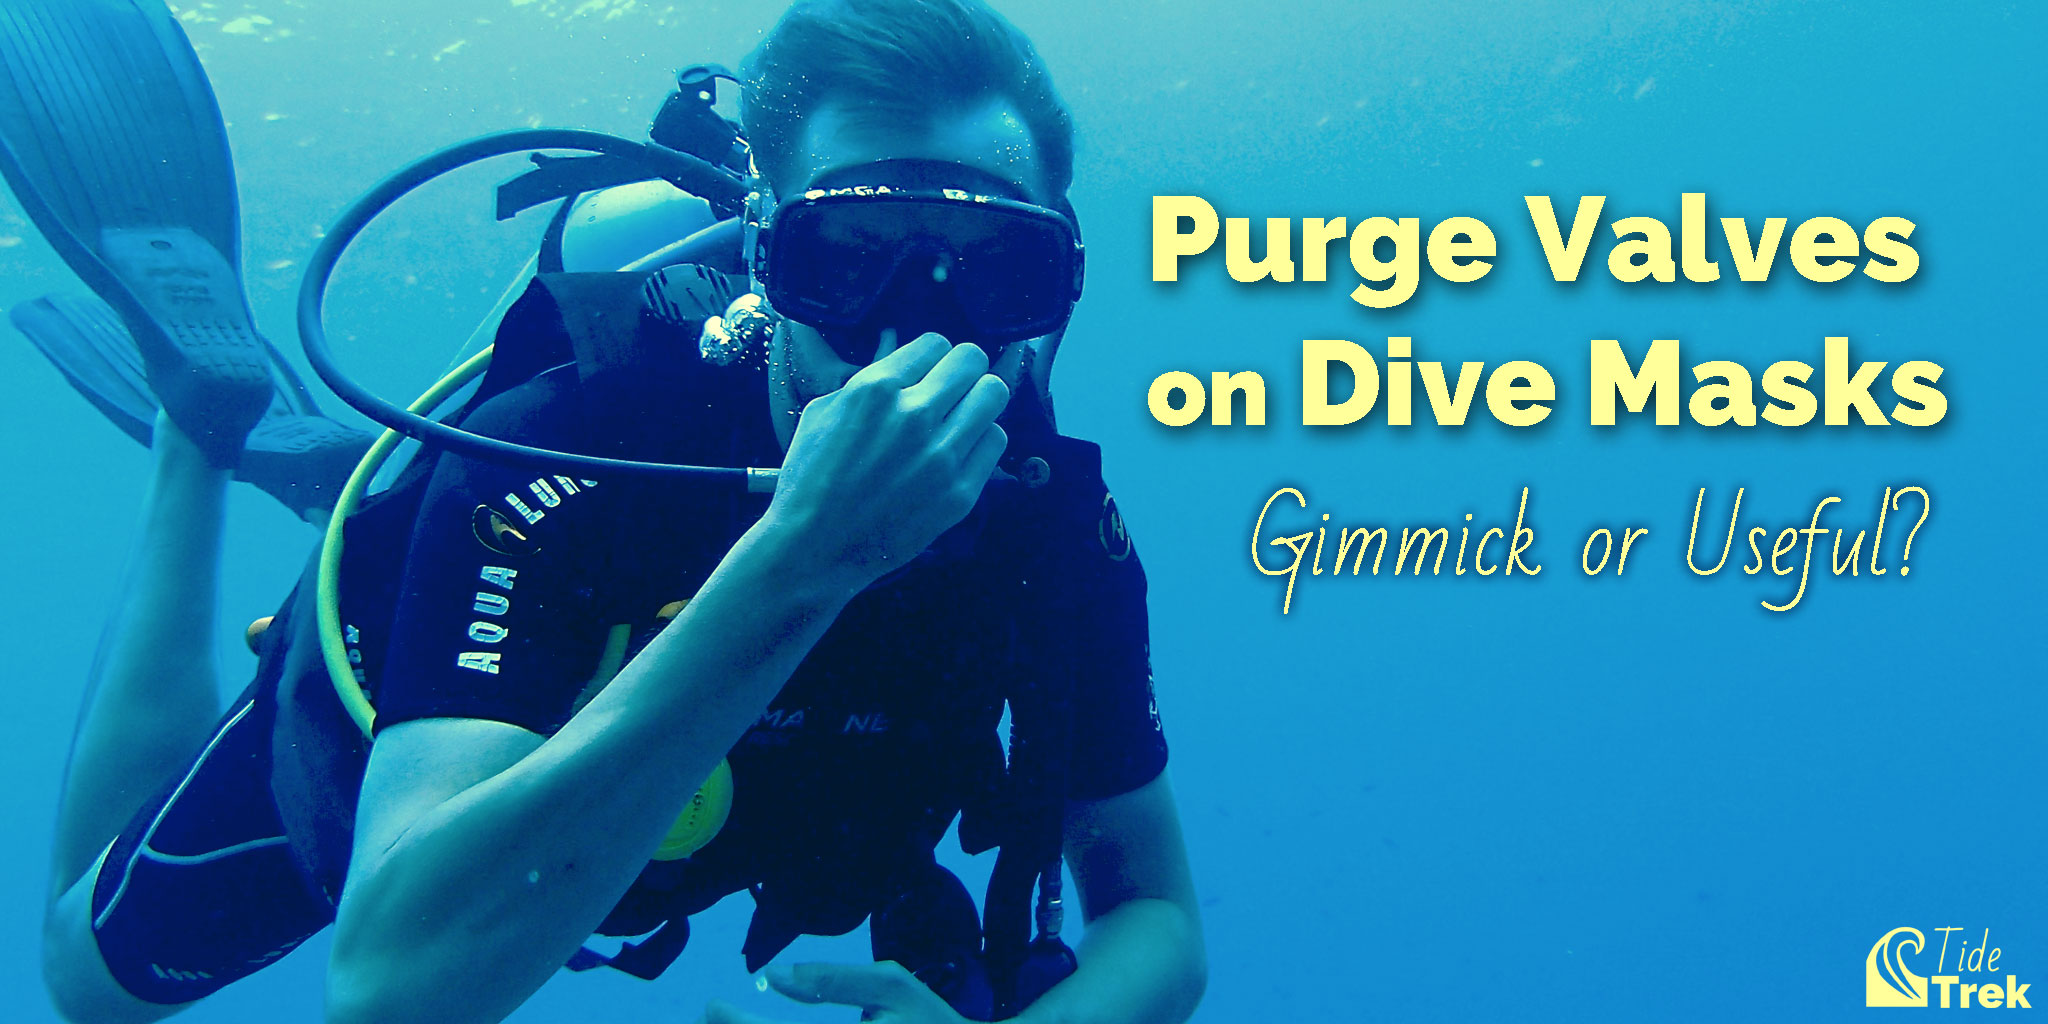 Purge Valves on Dive Masks: Gimmick or Useful?